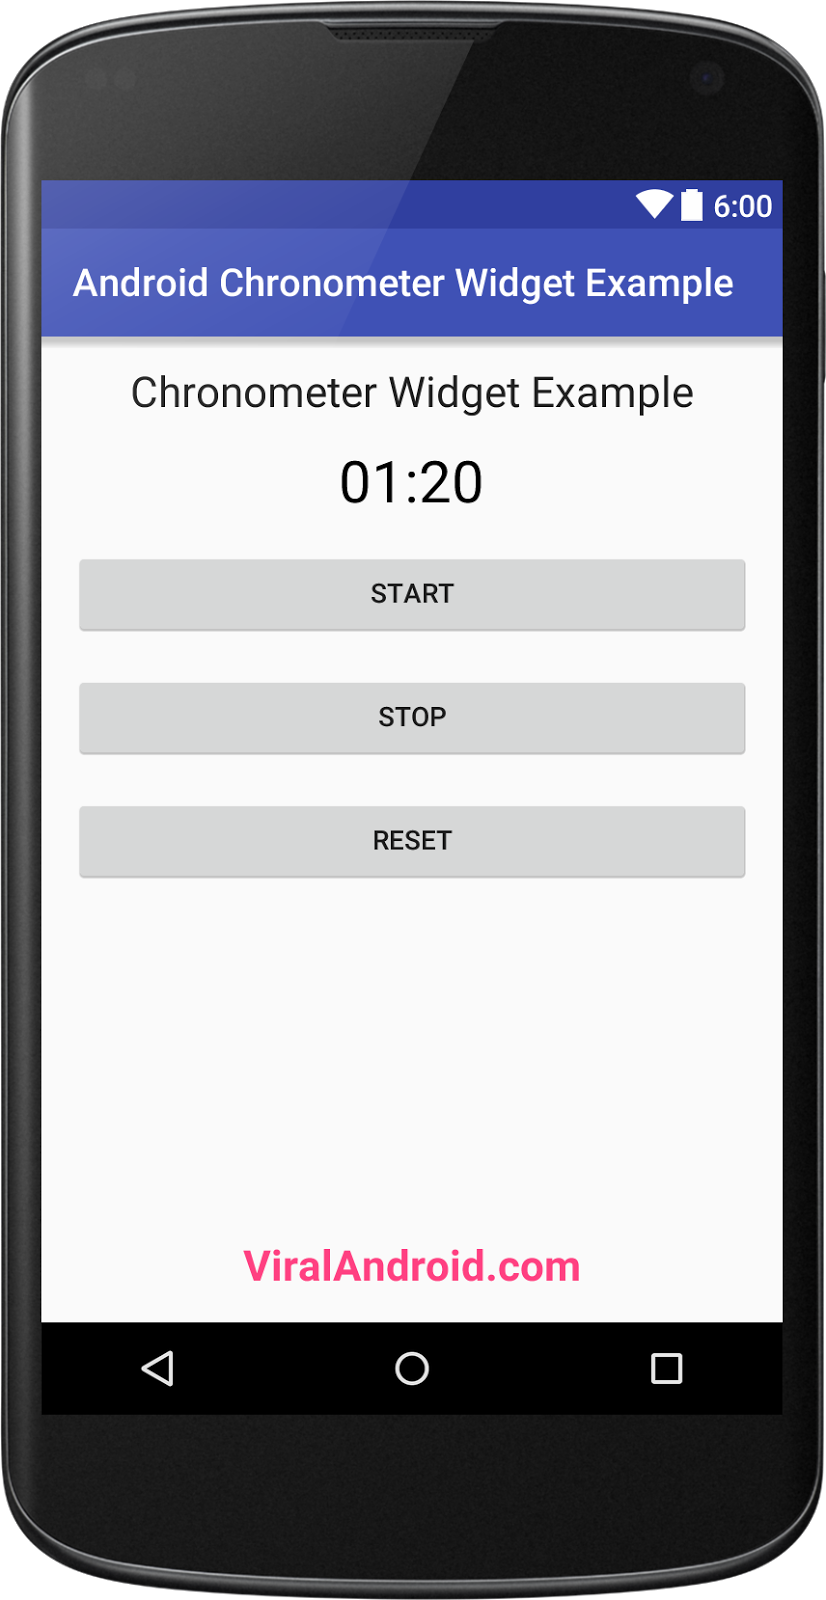 you will learn to implement simple chronometer in android application with a start Android Chronometer Widget Example